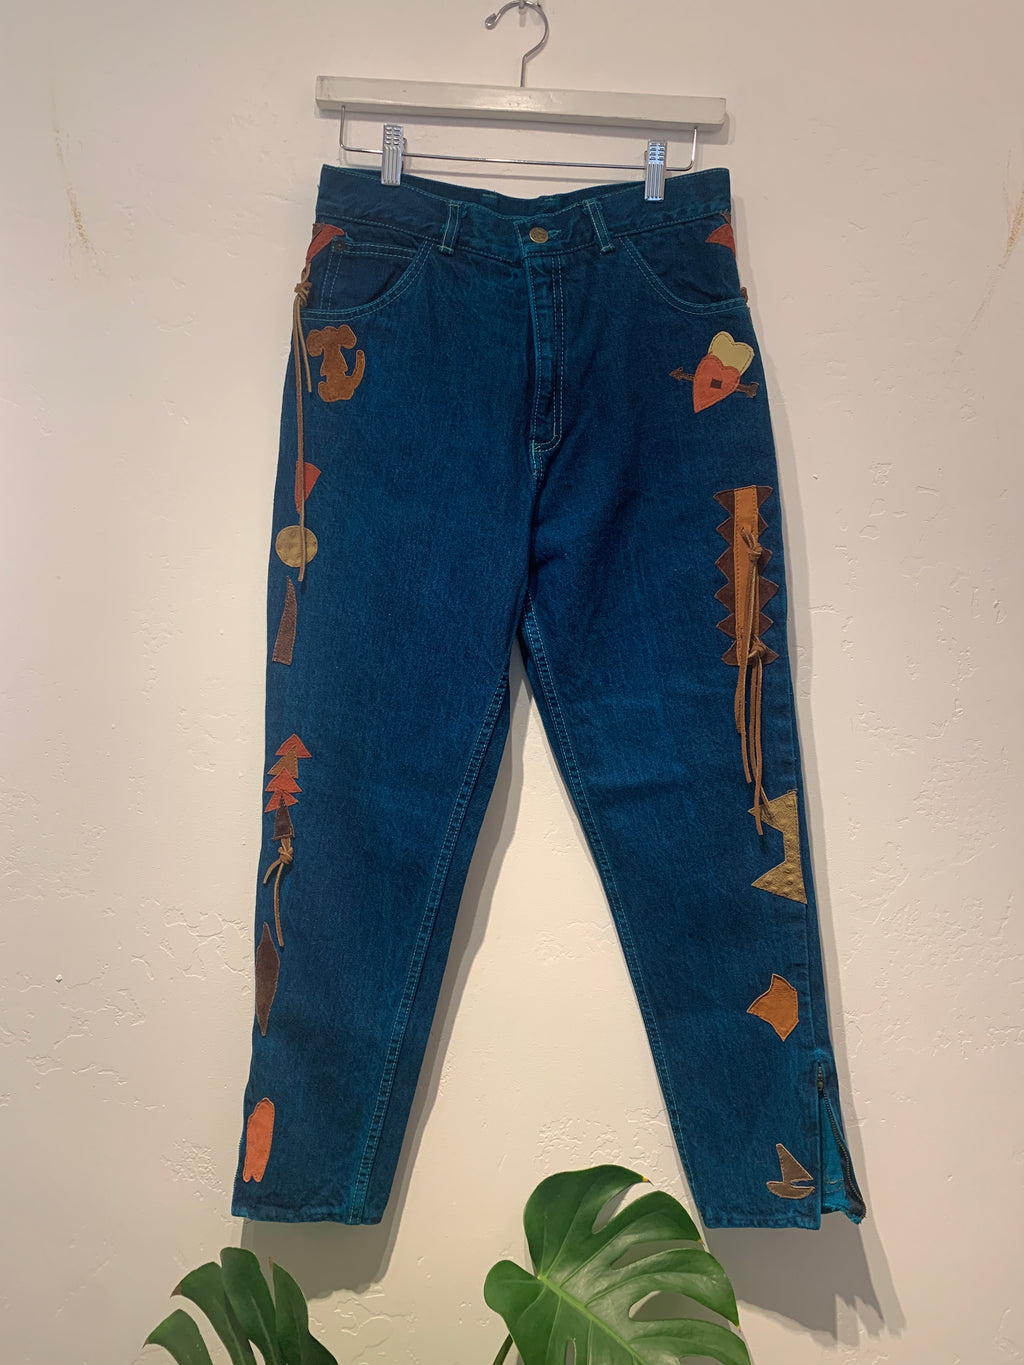 Vintage Overdye Denim Appliqué Pants